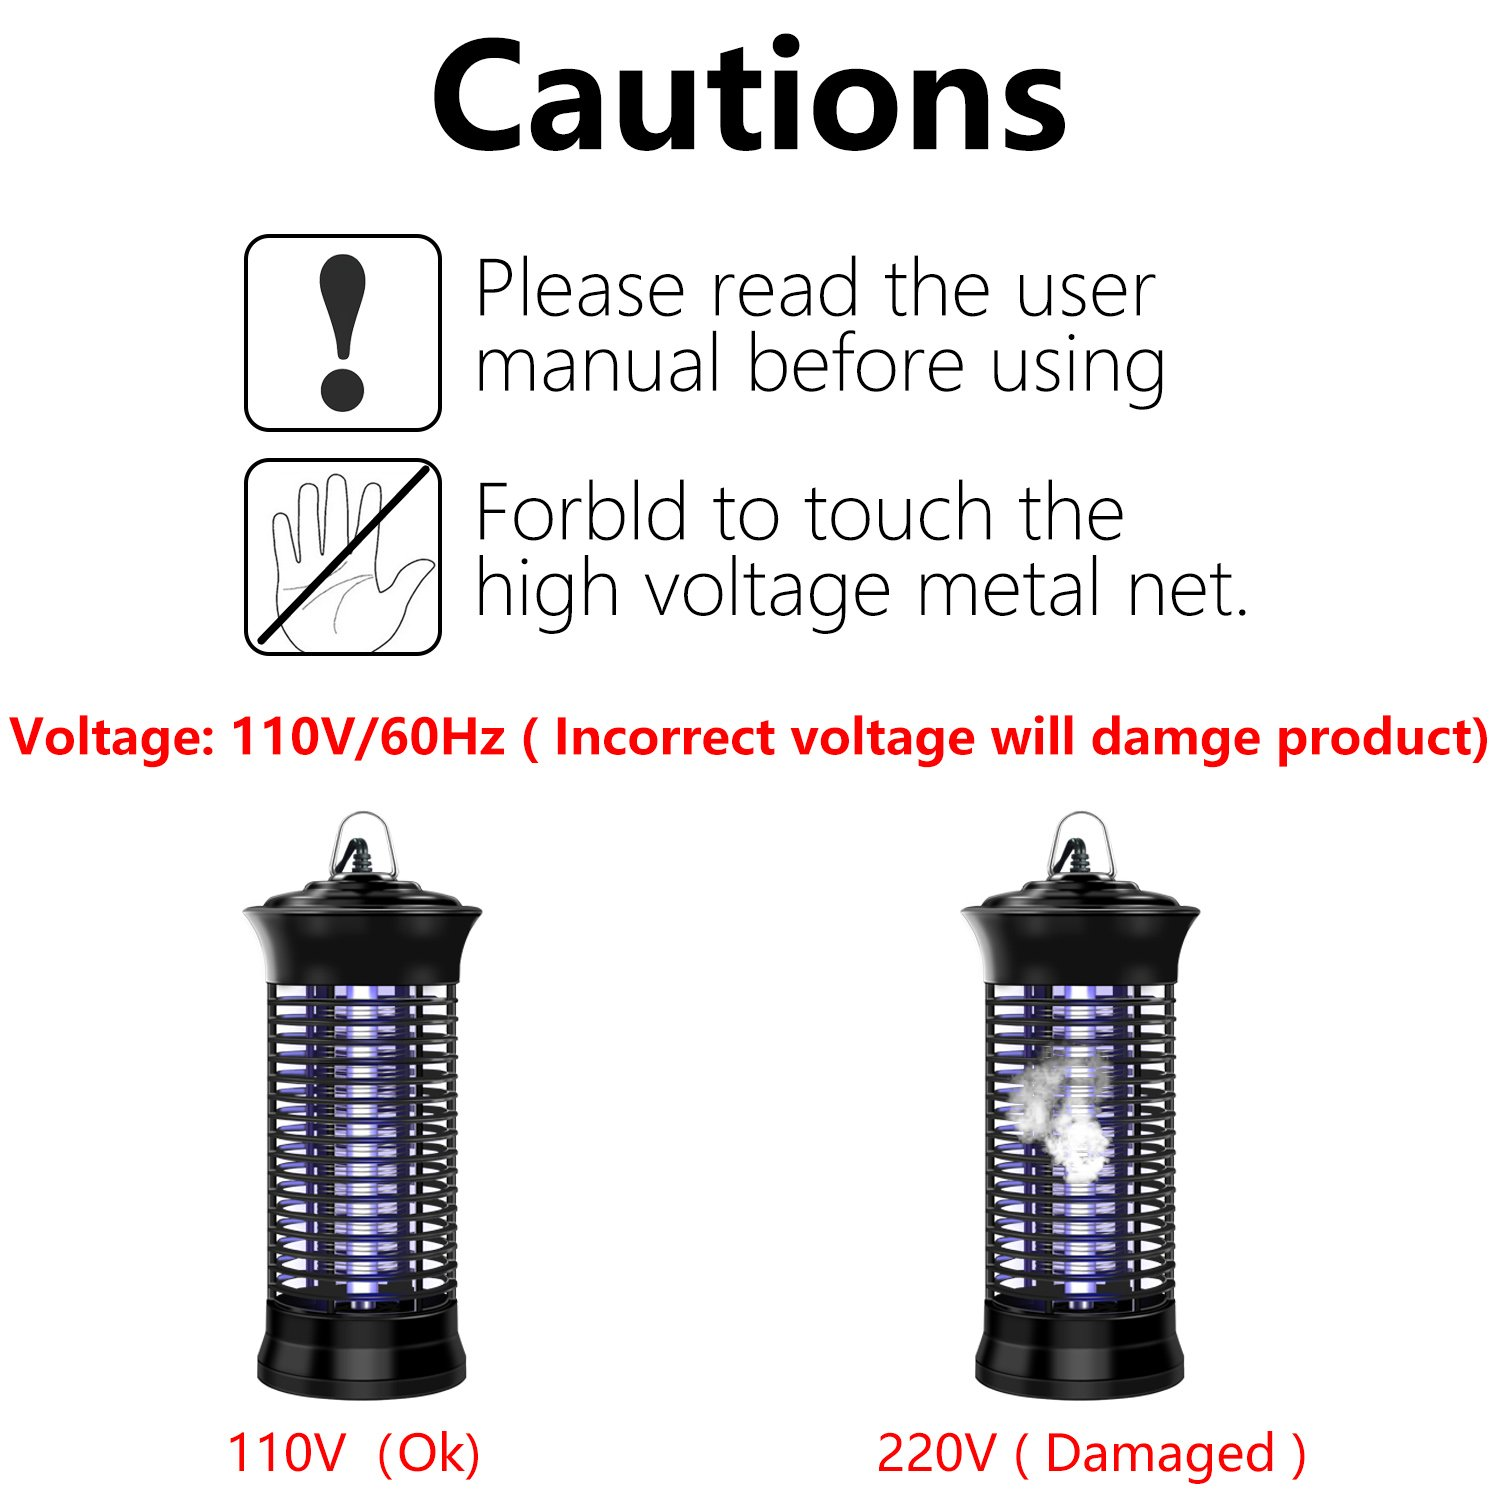 EYECLUB Indoor Electronic Mosquito Killer, Bug Zapper, UV Light Bulb, Low  Power Consumption, No Chemical Insect Killer for Home, Garden, Yard,